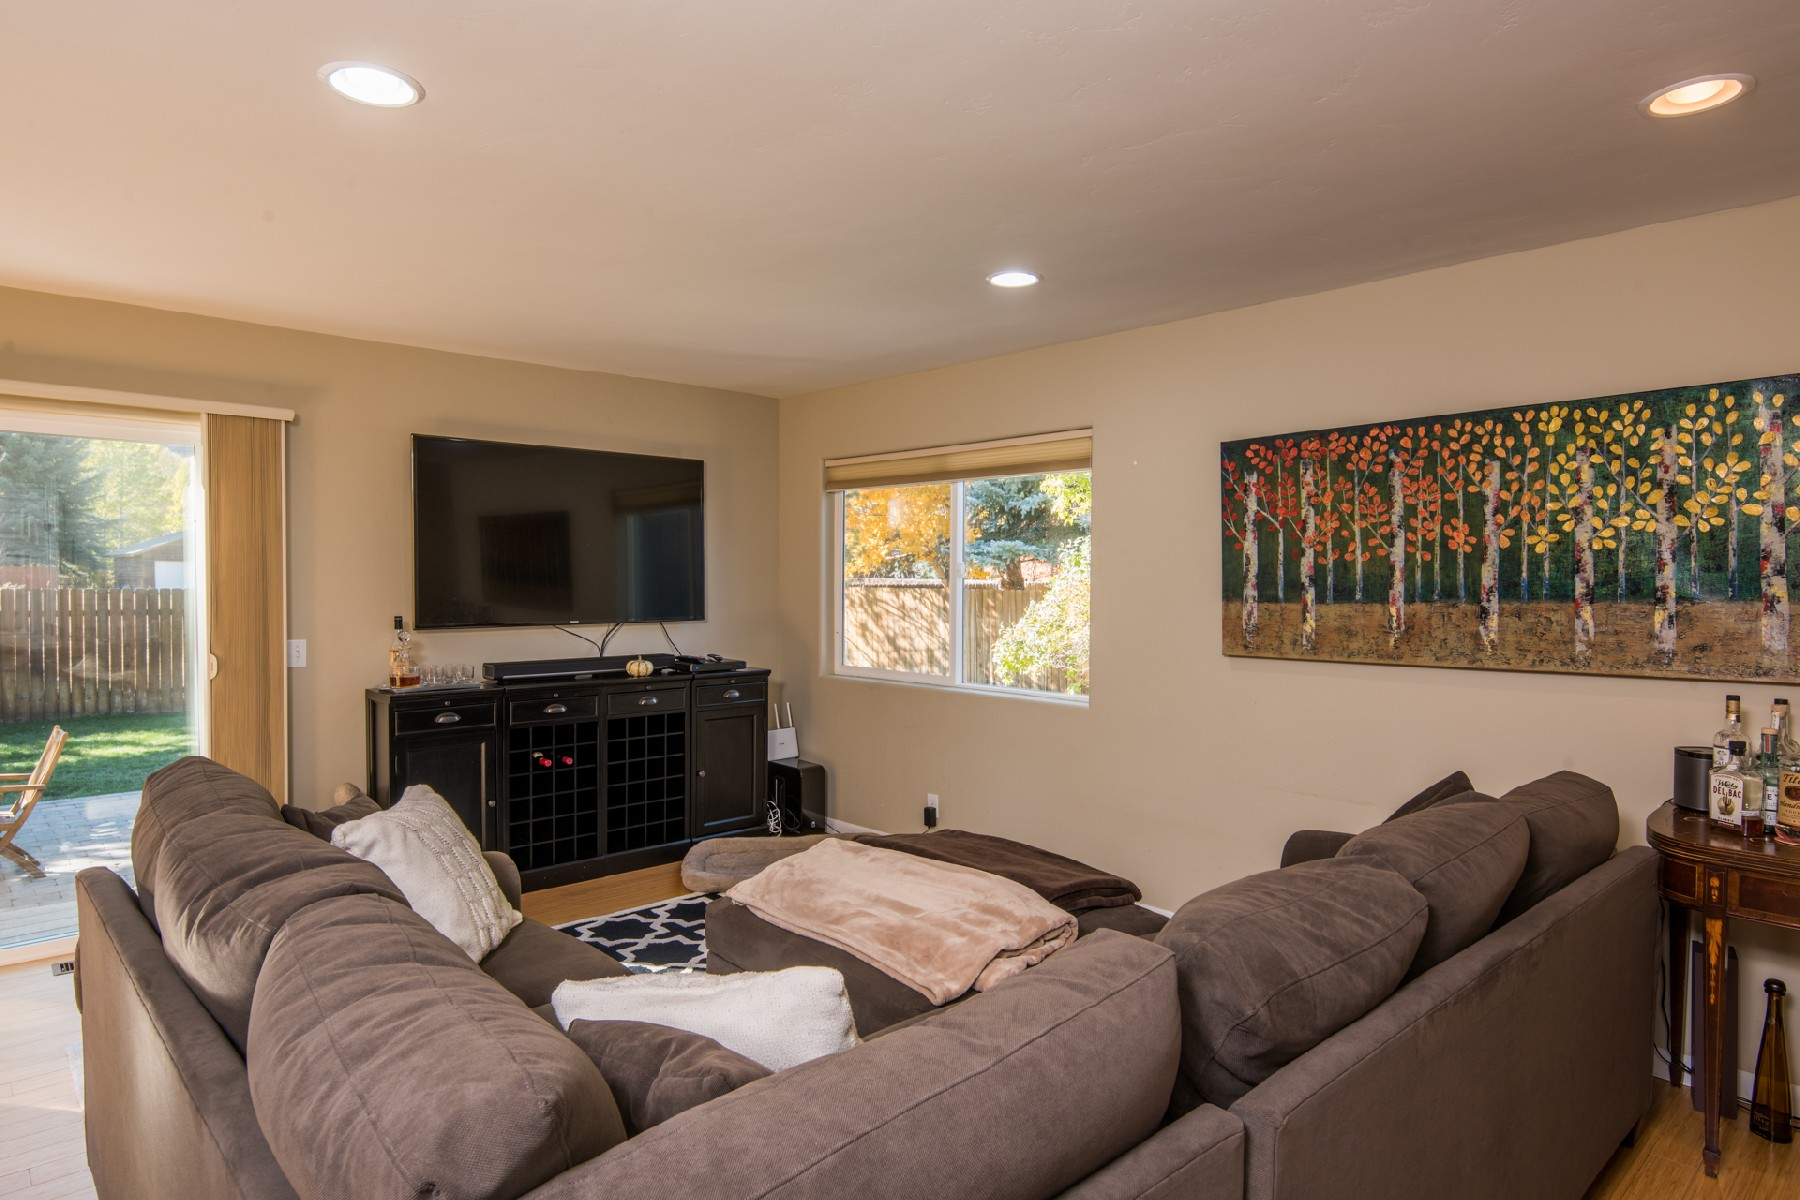 Additional photo for property listing at No Need To Look Further 1121 Queen Of The Hills Dr 黑利, 爱达荷州 83333 美国